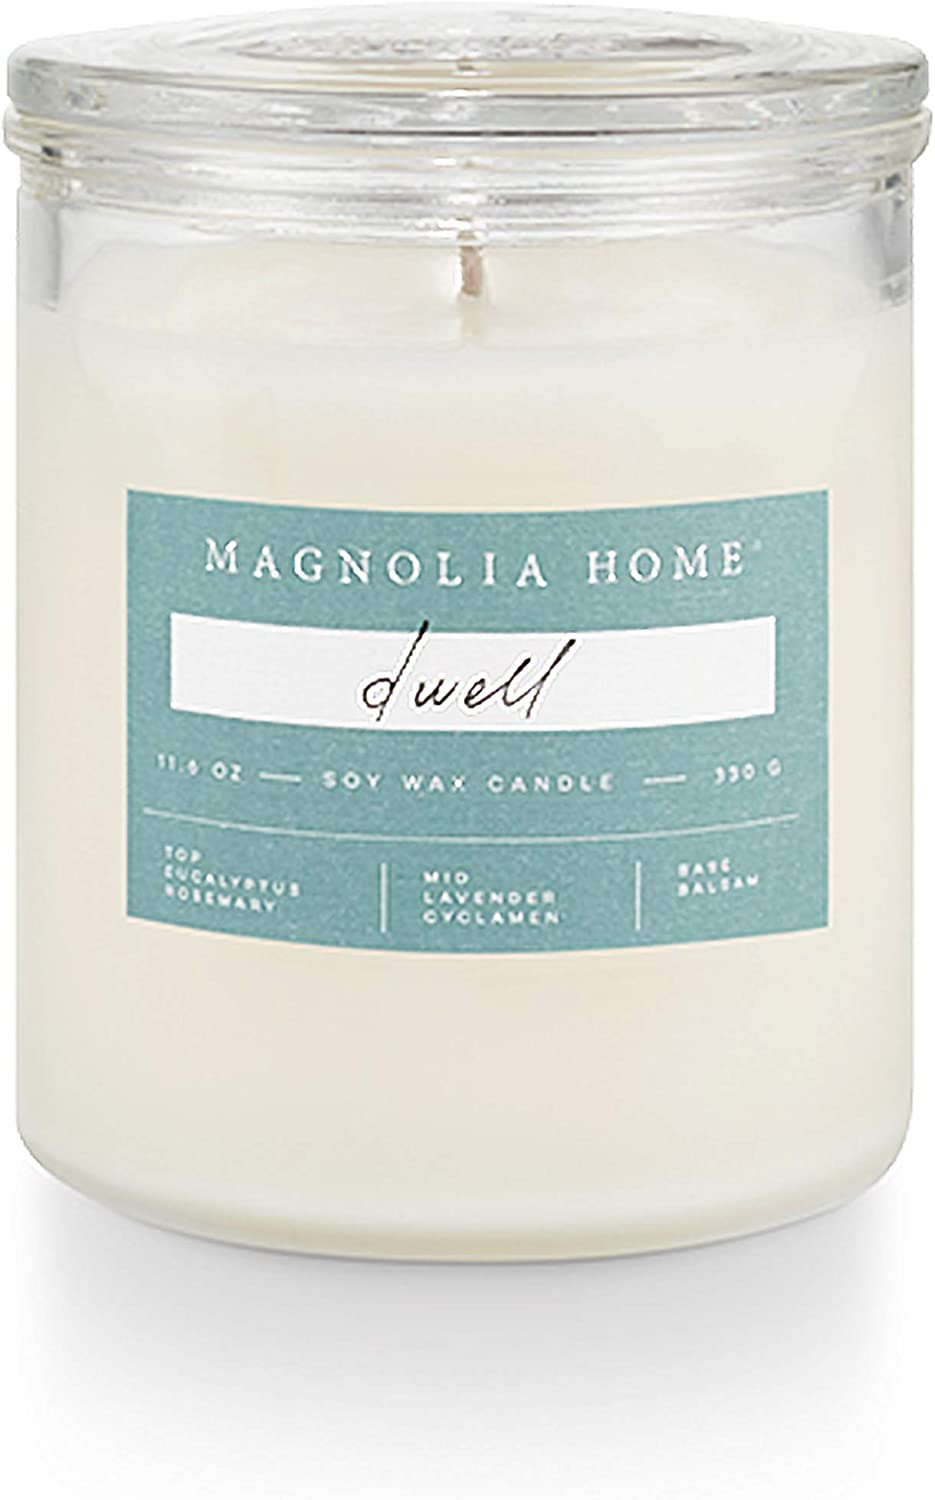 Magnolia Home Dwell Lidded-Glass Candle Home Decor By Joanna Gaines